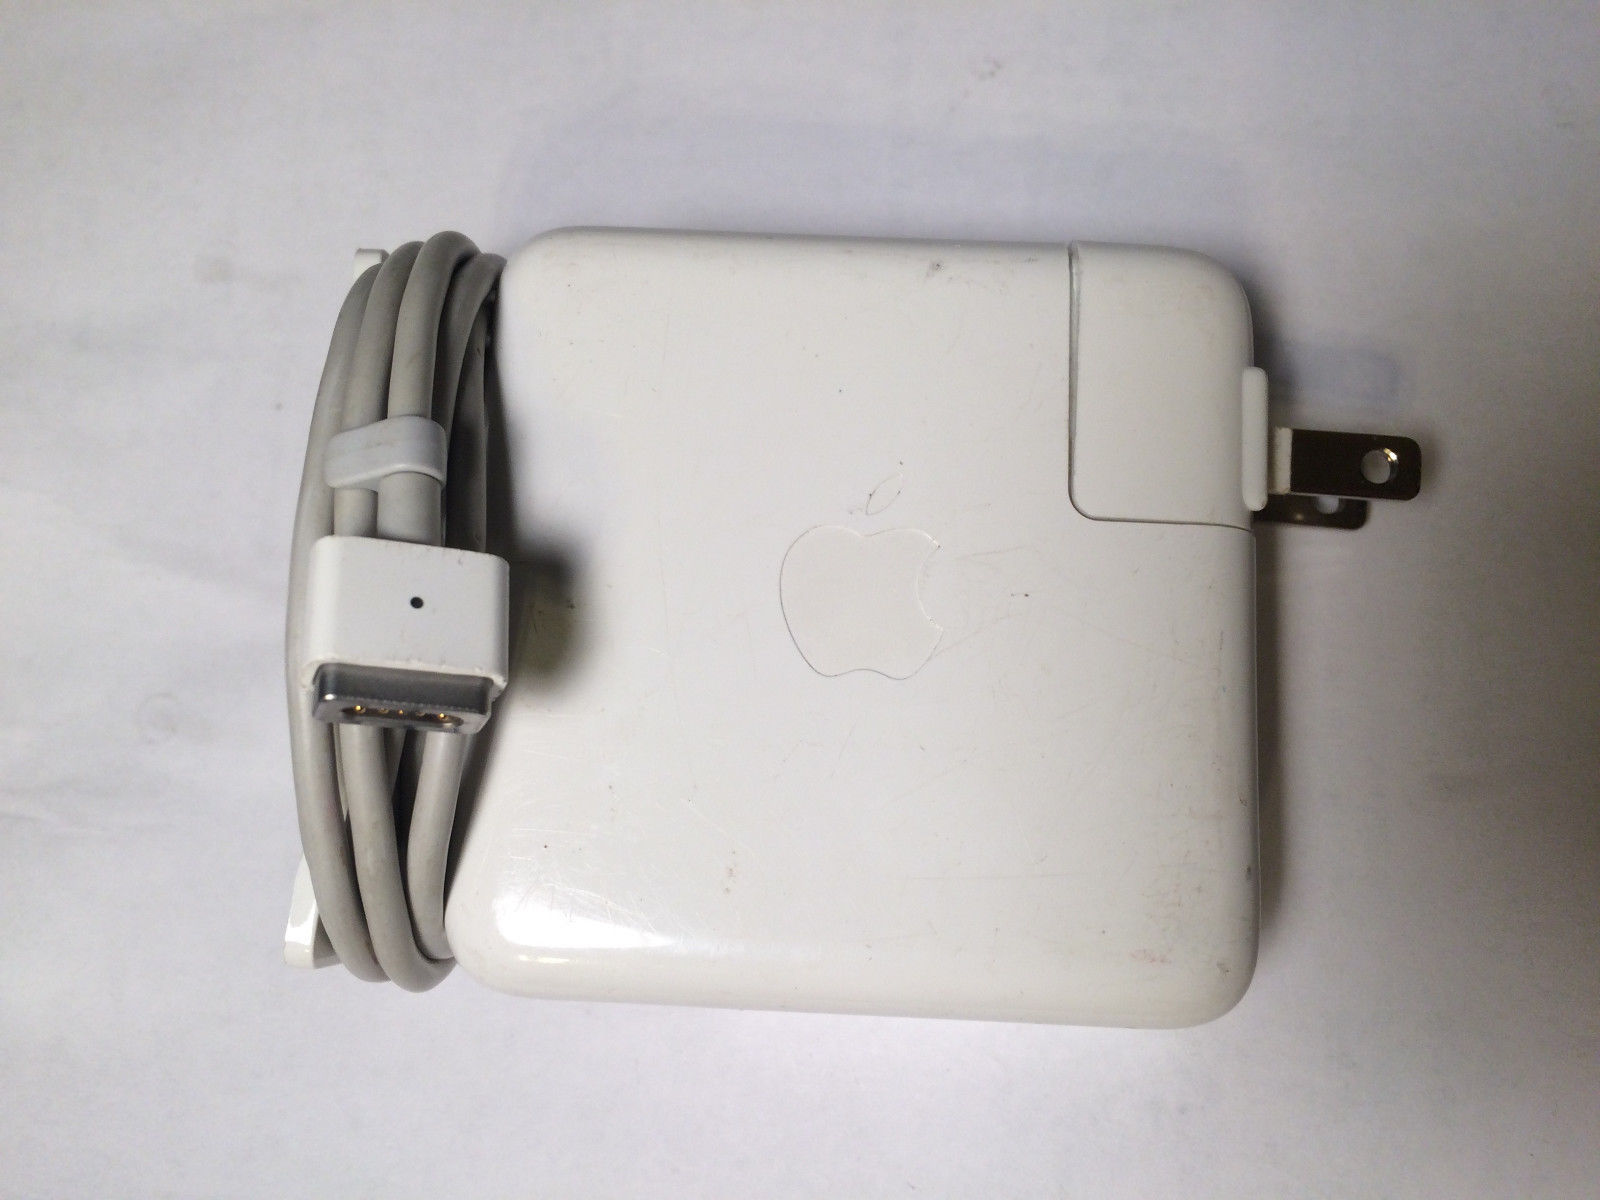 Genuine Apple A1184 MagSafe 60W Power Adapter with Apple Power Cable TESTED